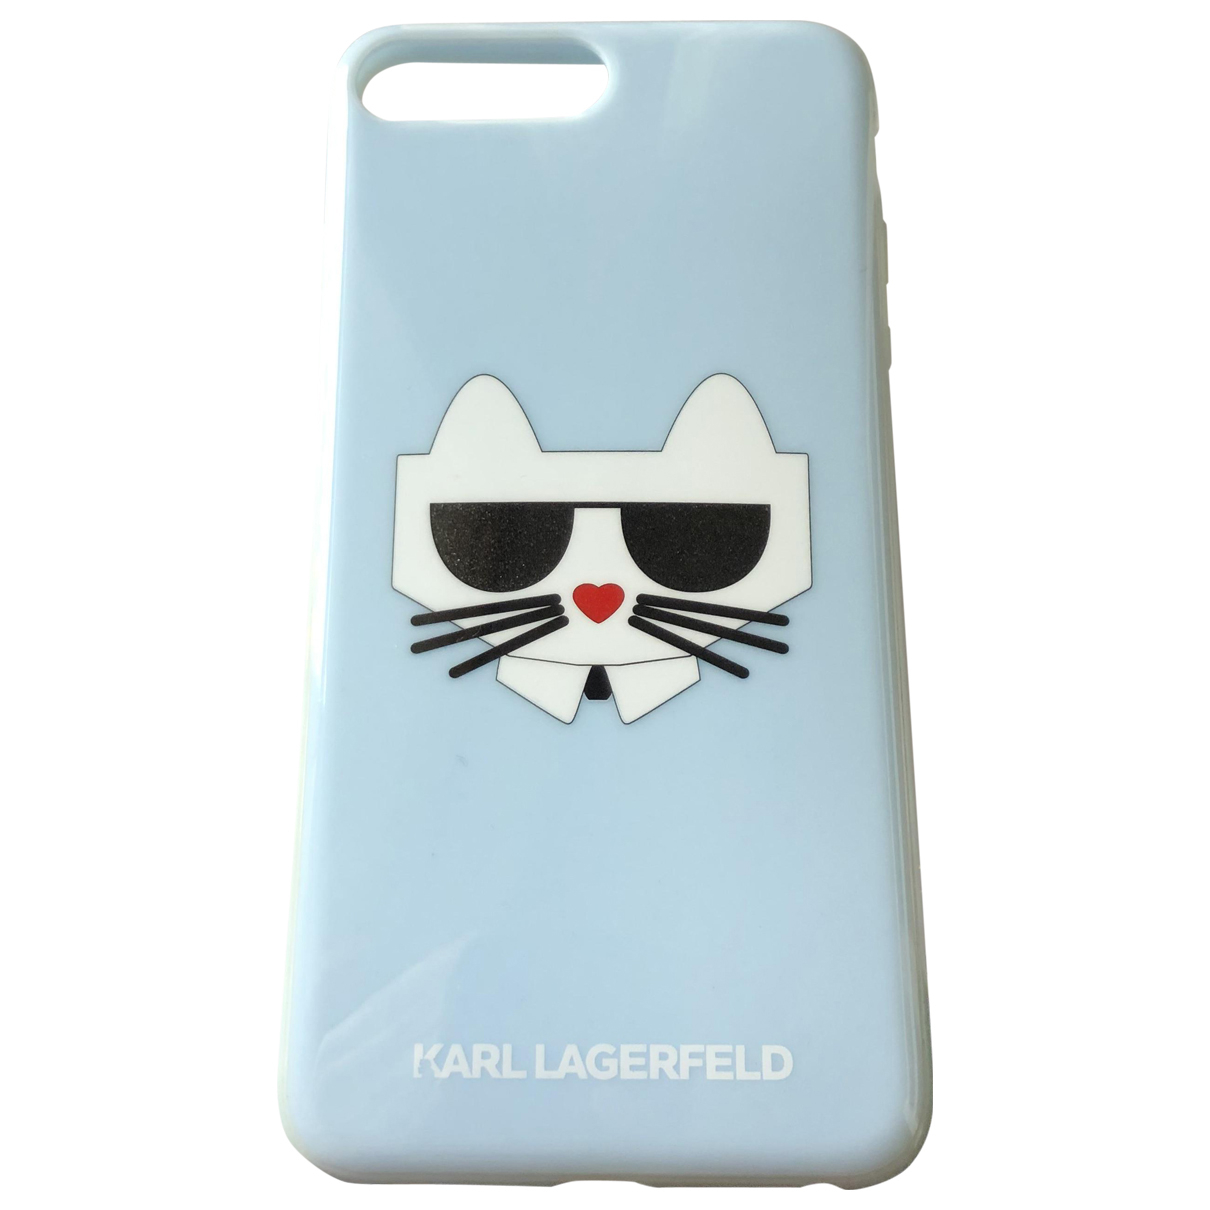 Karl Lagerfeld - Accessoires   pour lifestyle - turquoise